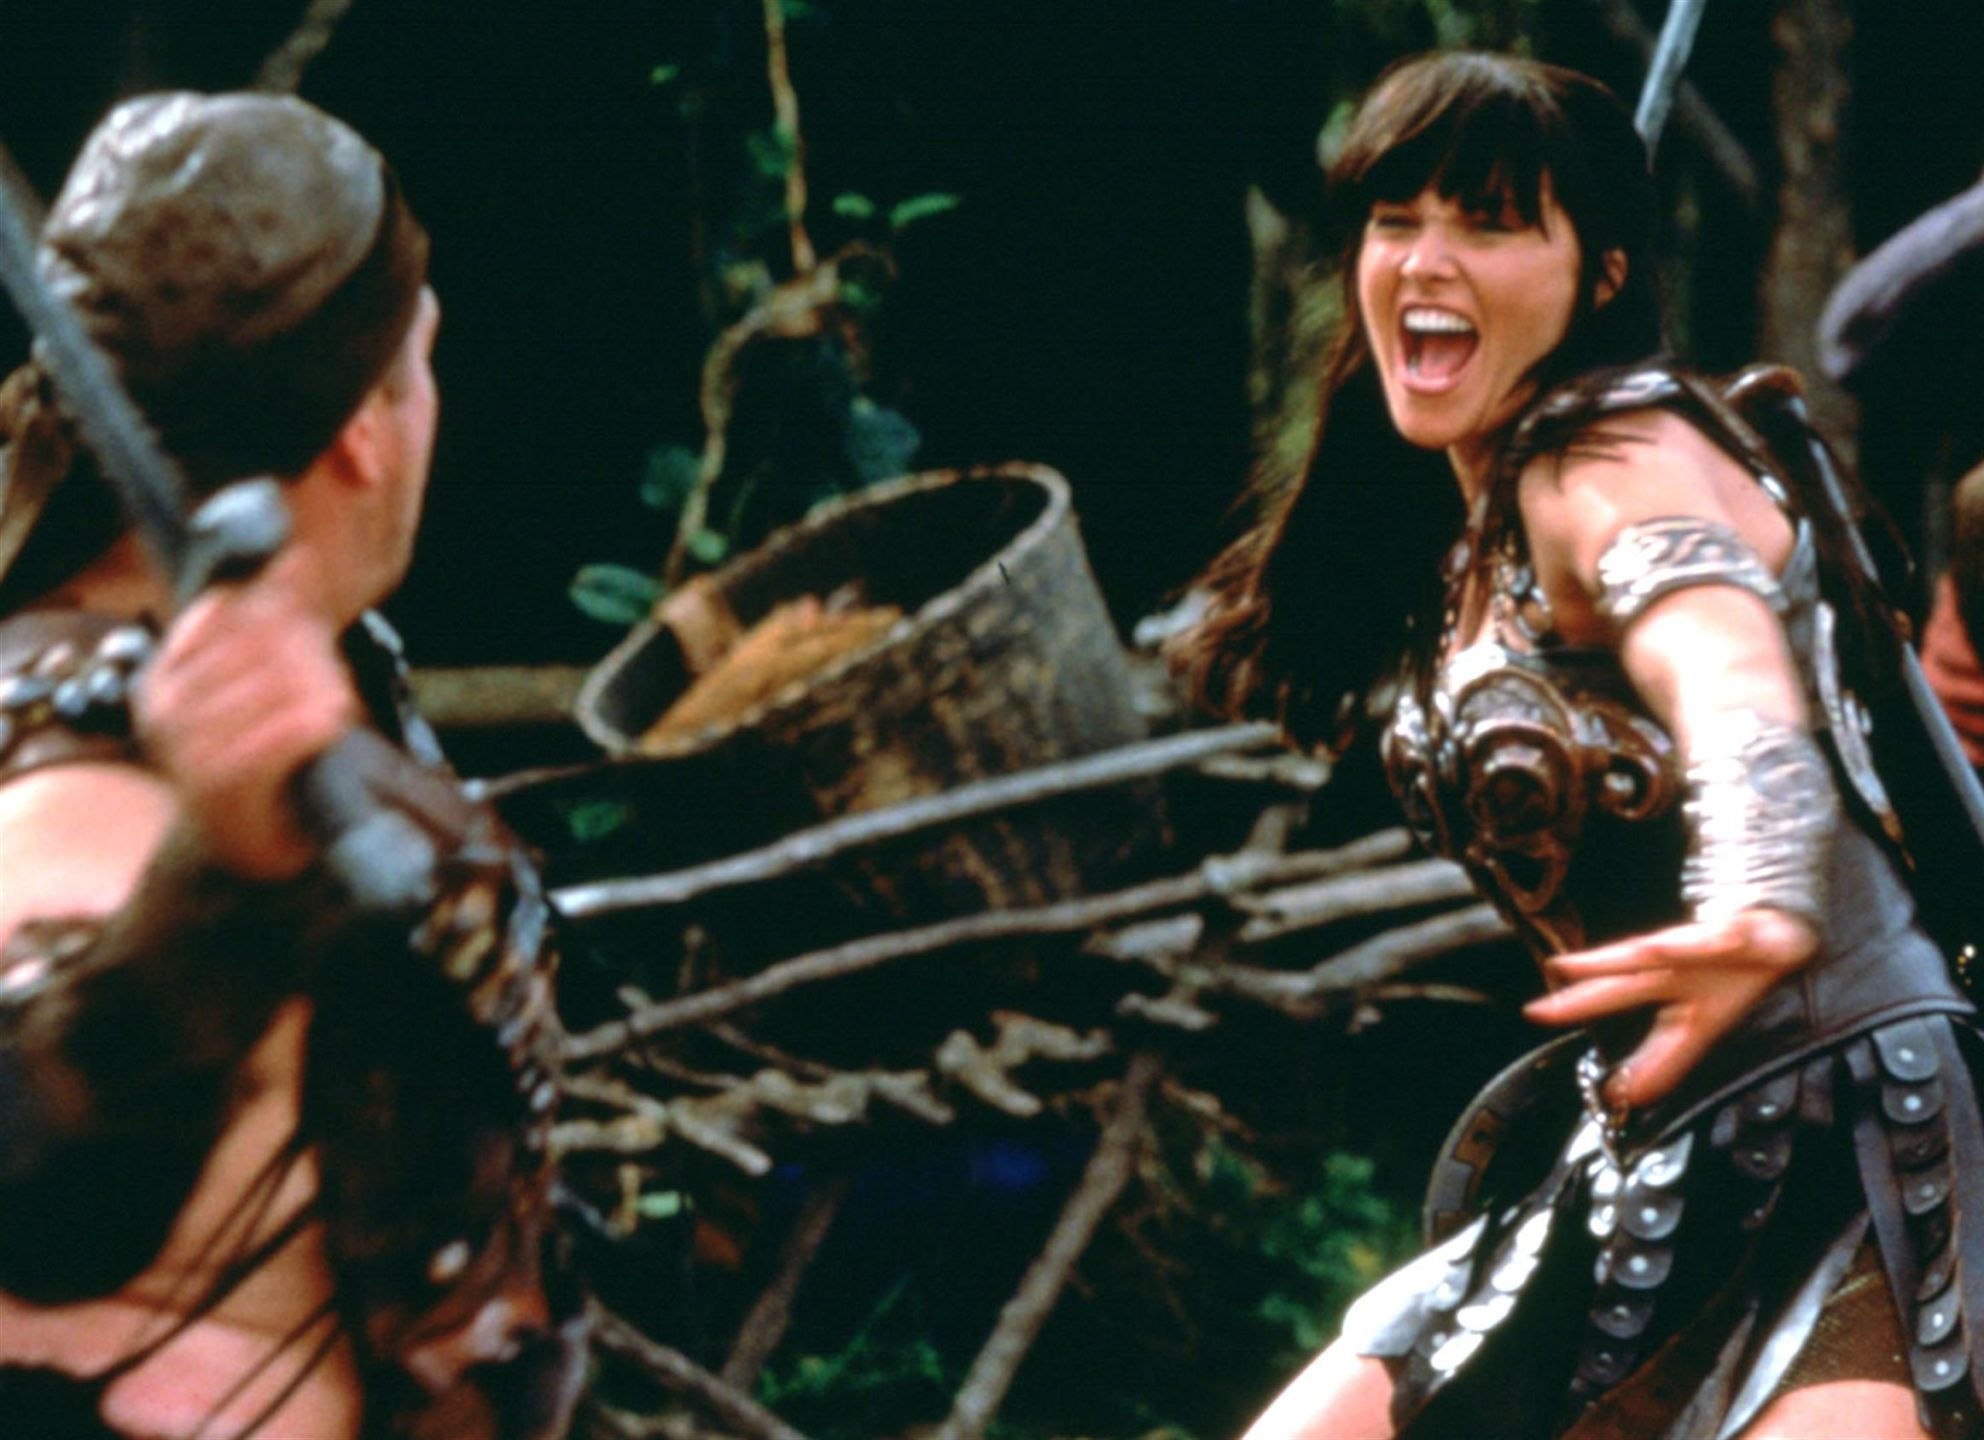 190531 3964945 Crusader anvver 2 3000x1688 1537659459707 scaled e1610015773464 20 Things You Never Knew About Xena: Warrior Princess